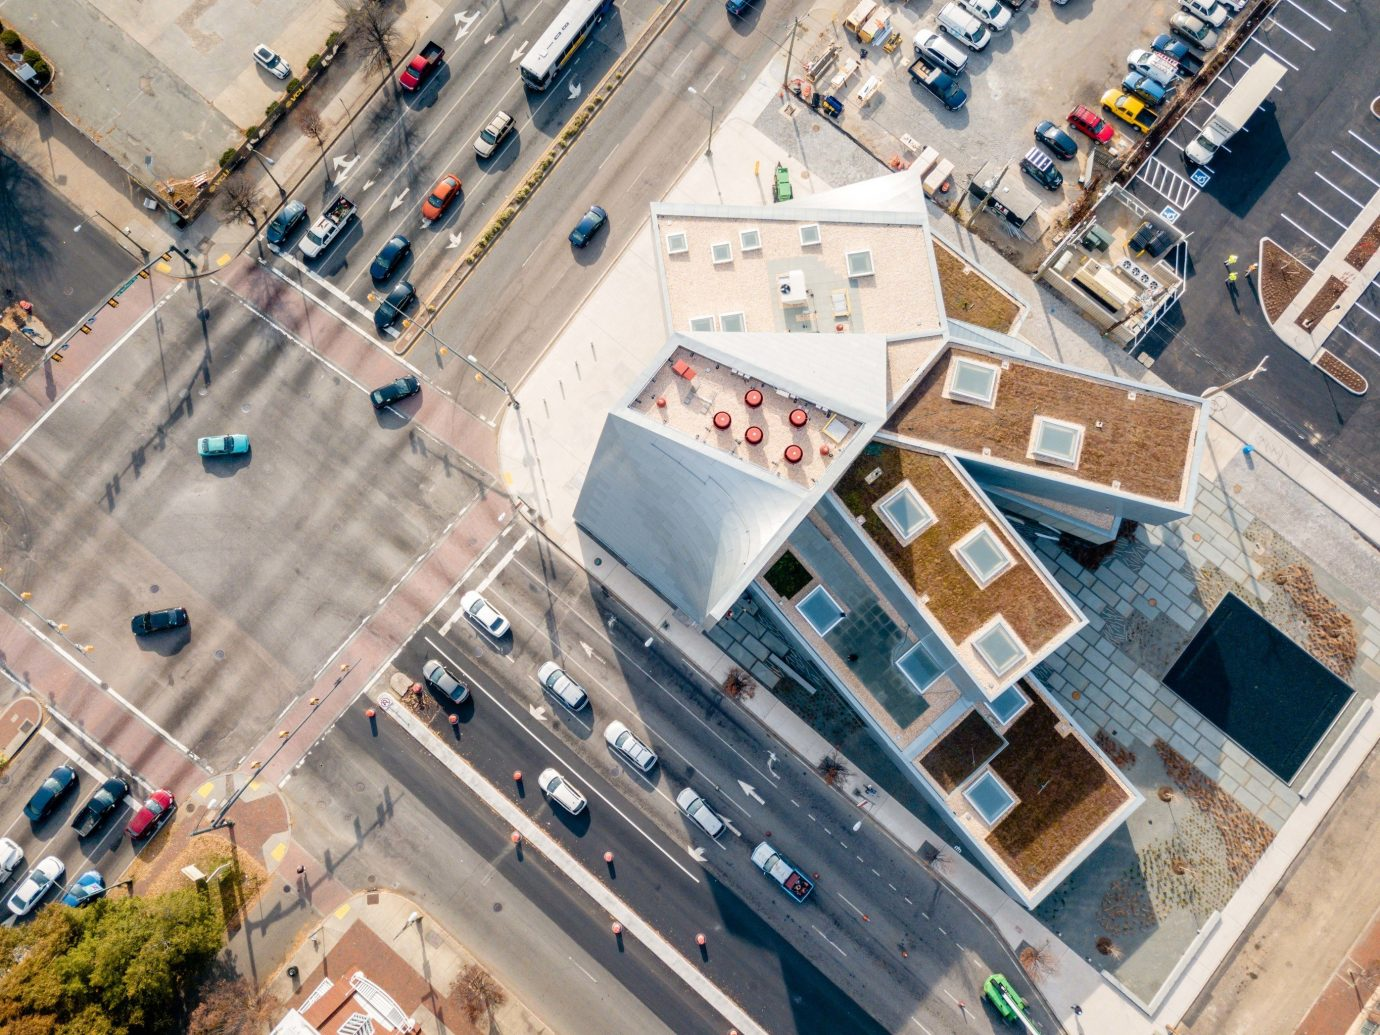 Spring Trips Trip Ideas urban area metropolitan area City aerial photography residential area neighbourhood metropolis bird's eye view suburb Architecture building urban design daytime mixed use Downtown skyscraper real estate tower block sky